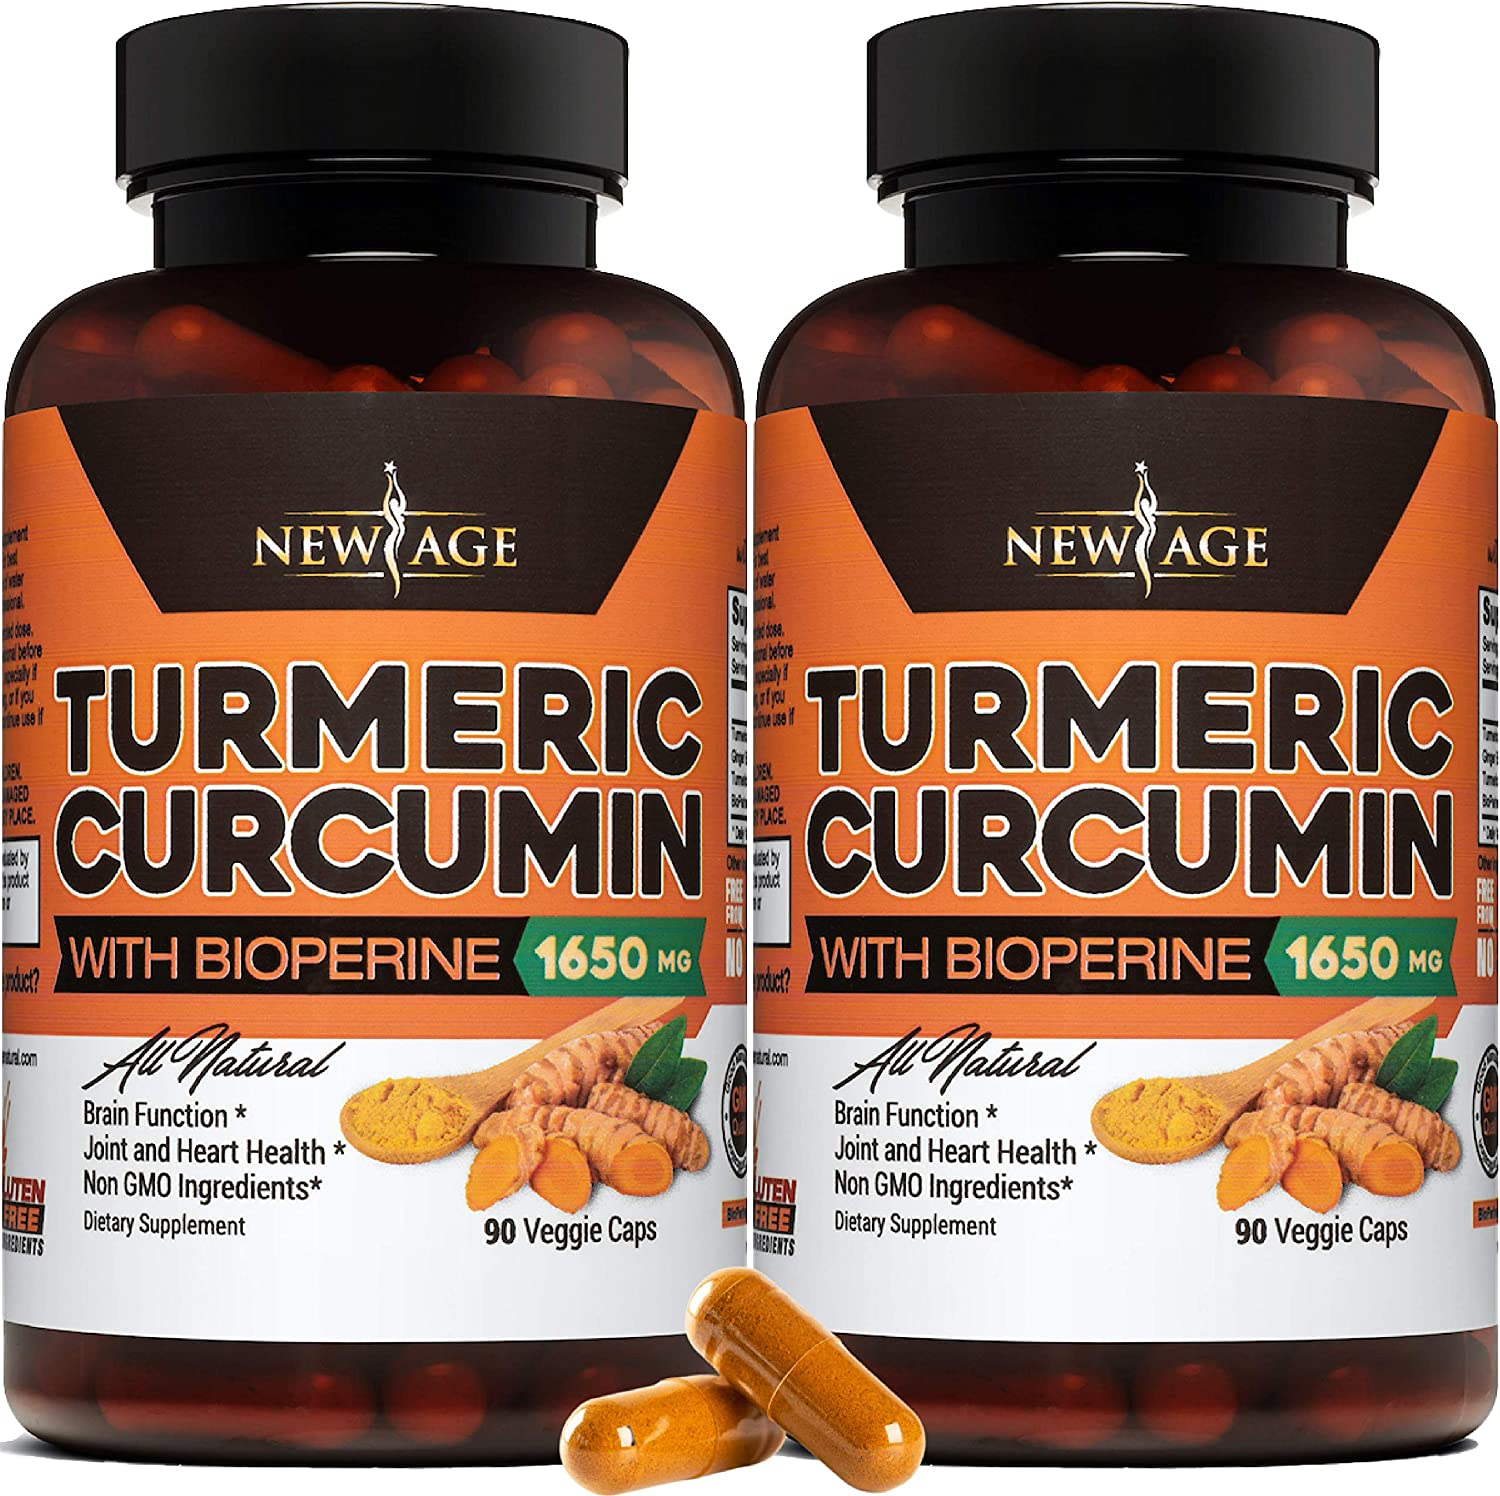 Turmeric Curcumin with Bioperine 1650mg by New Age - 2 Pack - Premium Joint & Healthy Inflammatory Support with 95% Standardized Curcuminoids. Non-GMO, Gluten Free Capsules with Black Pepper: Health & Personal Care